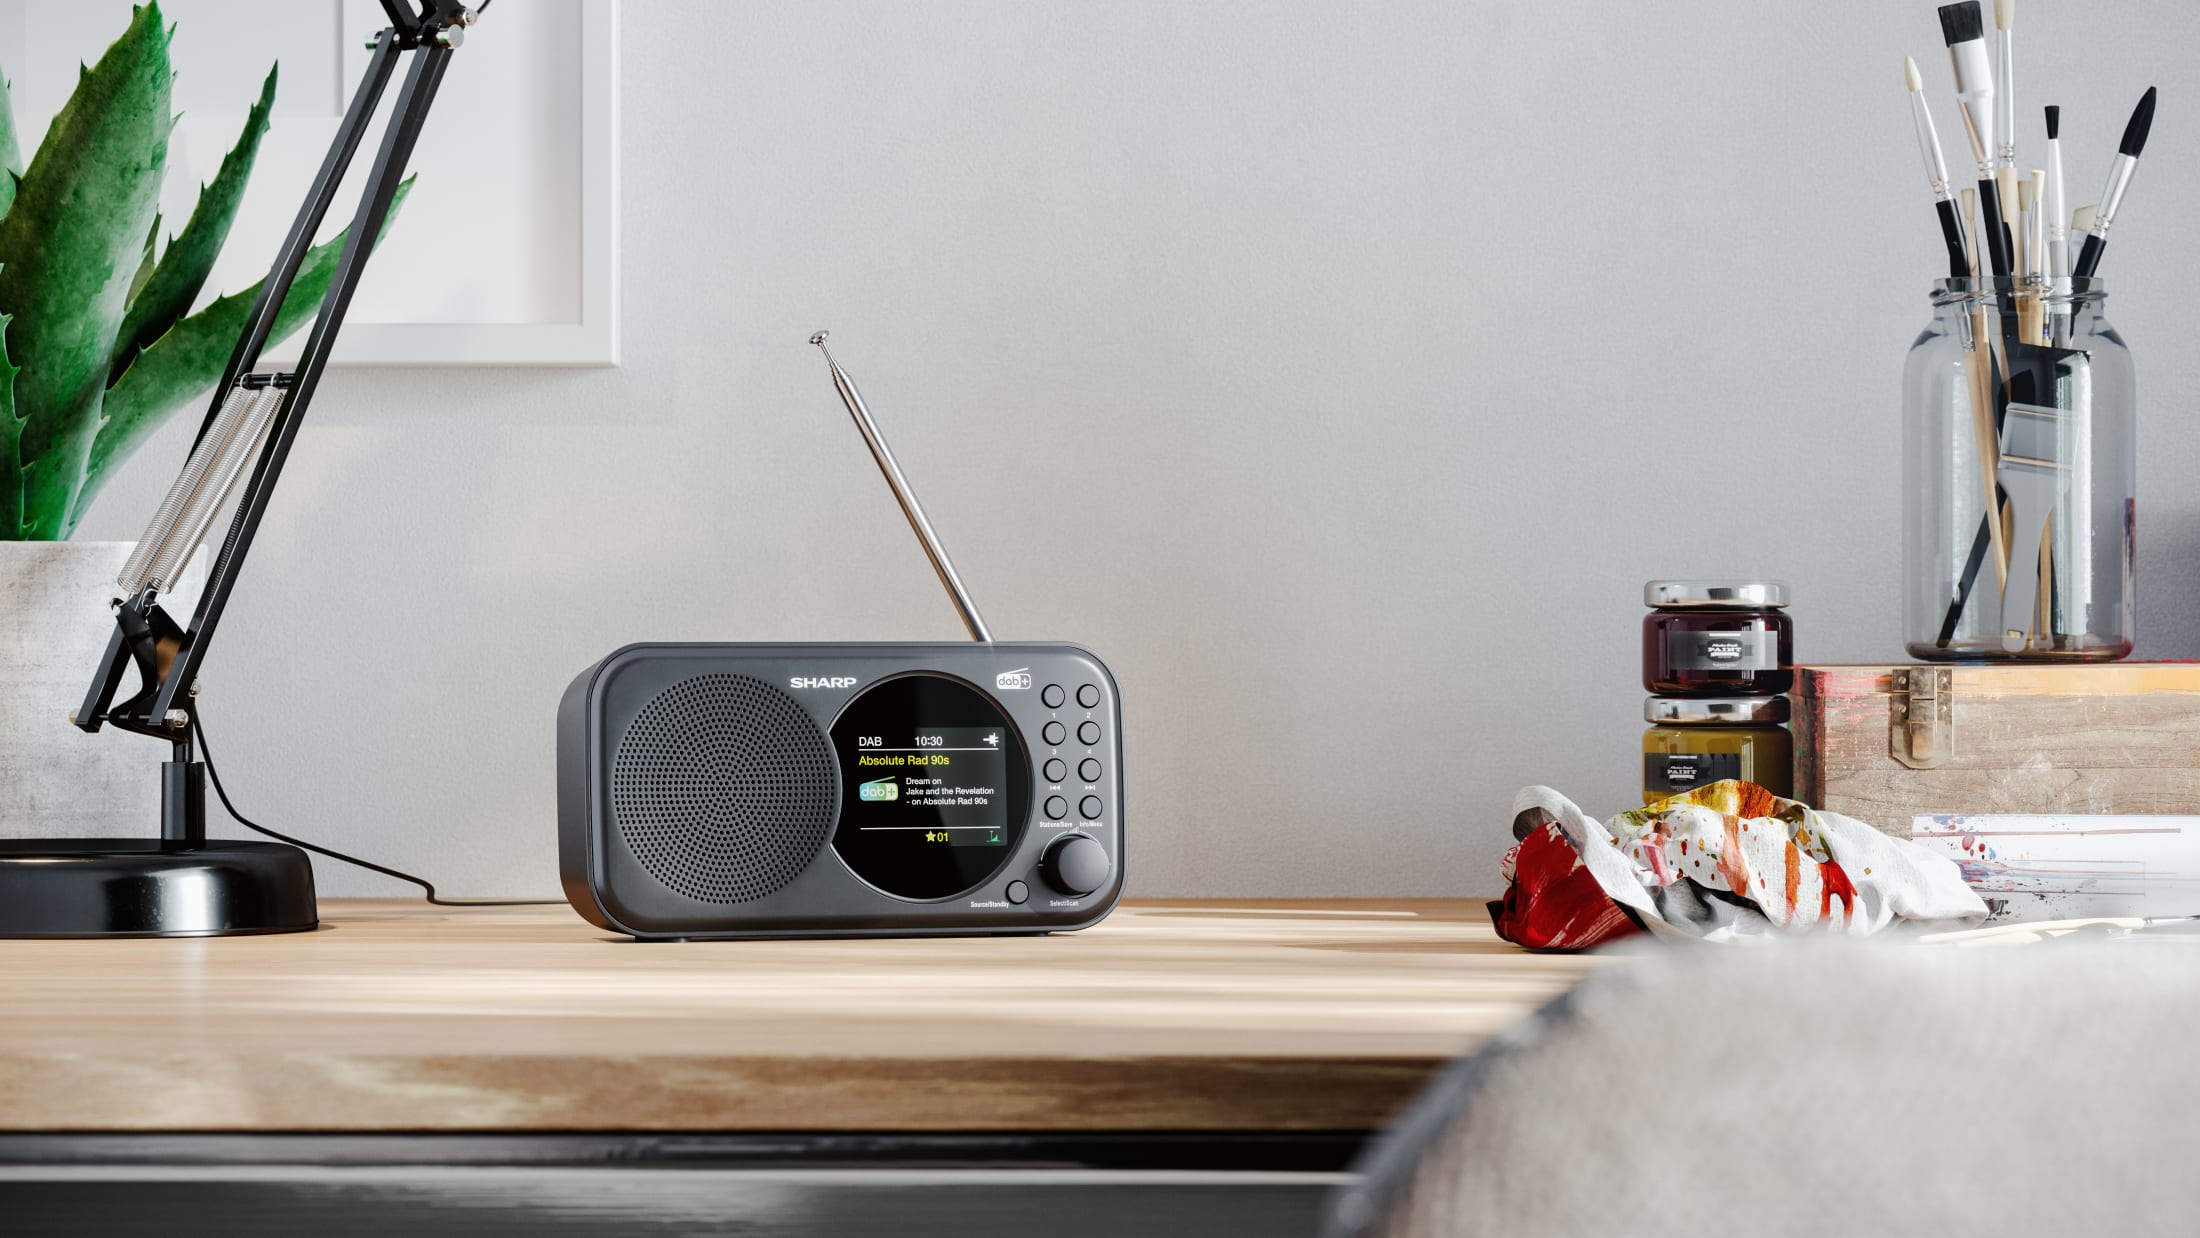 Portable Radio DAB/DAB+/FM with RDS, 1 W, LCD display and 20 pre-set stations.